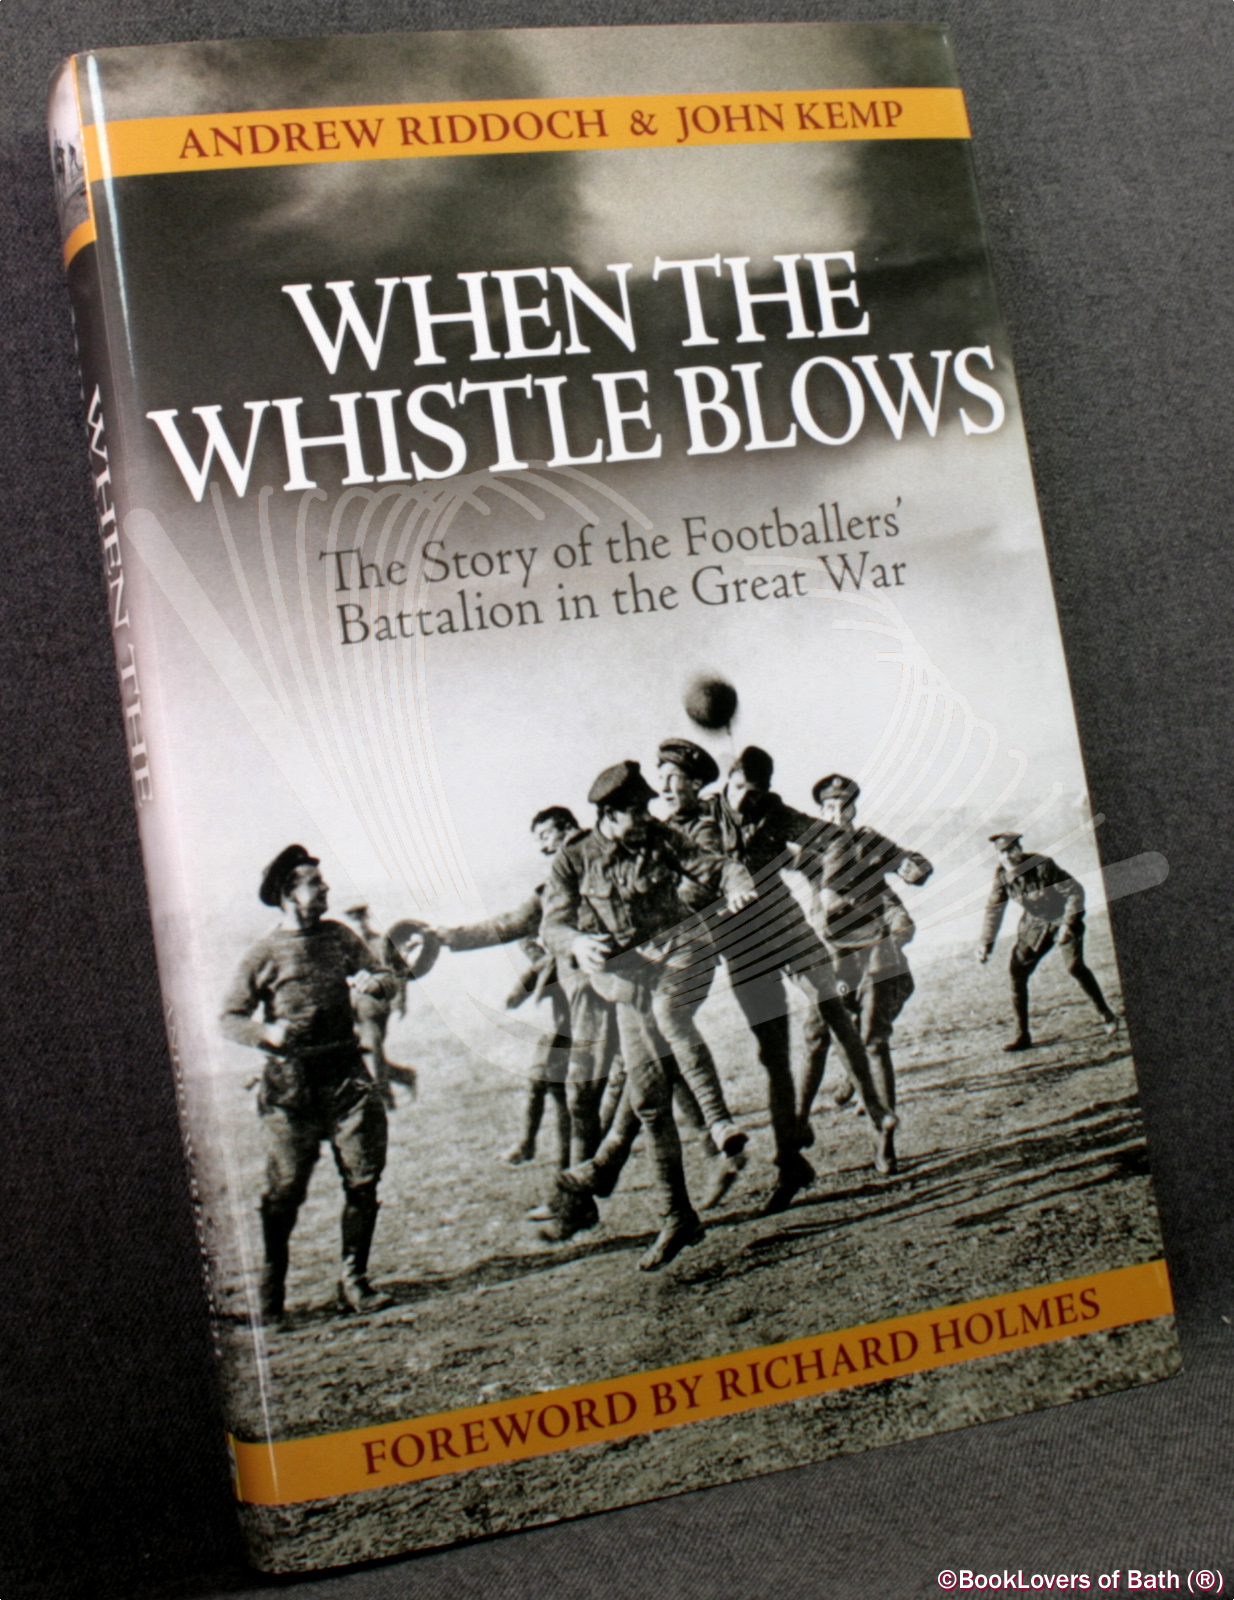 When the Whistle Blows: The Story of the Footballers' Battalion in the Great War - Andrew Riddoch & John Kemp